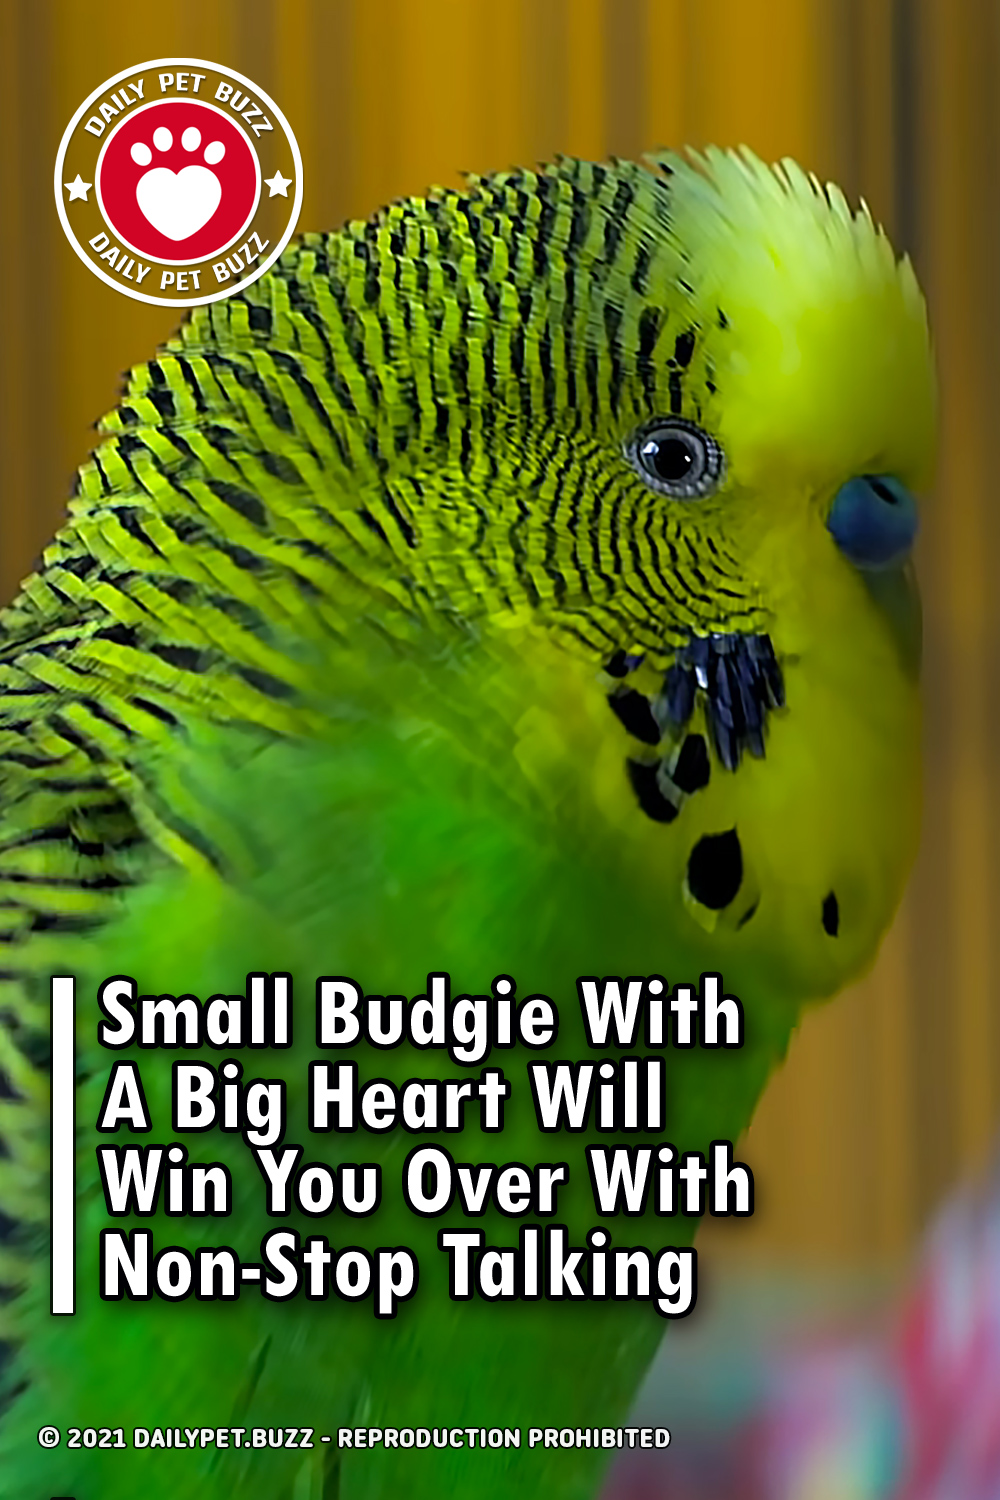 Small Budgie With A Big Heart Will Win You Over With Non-Stop Talking